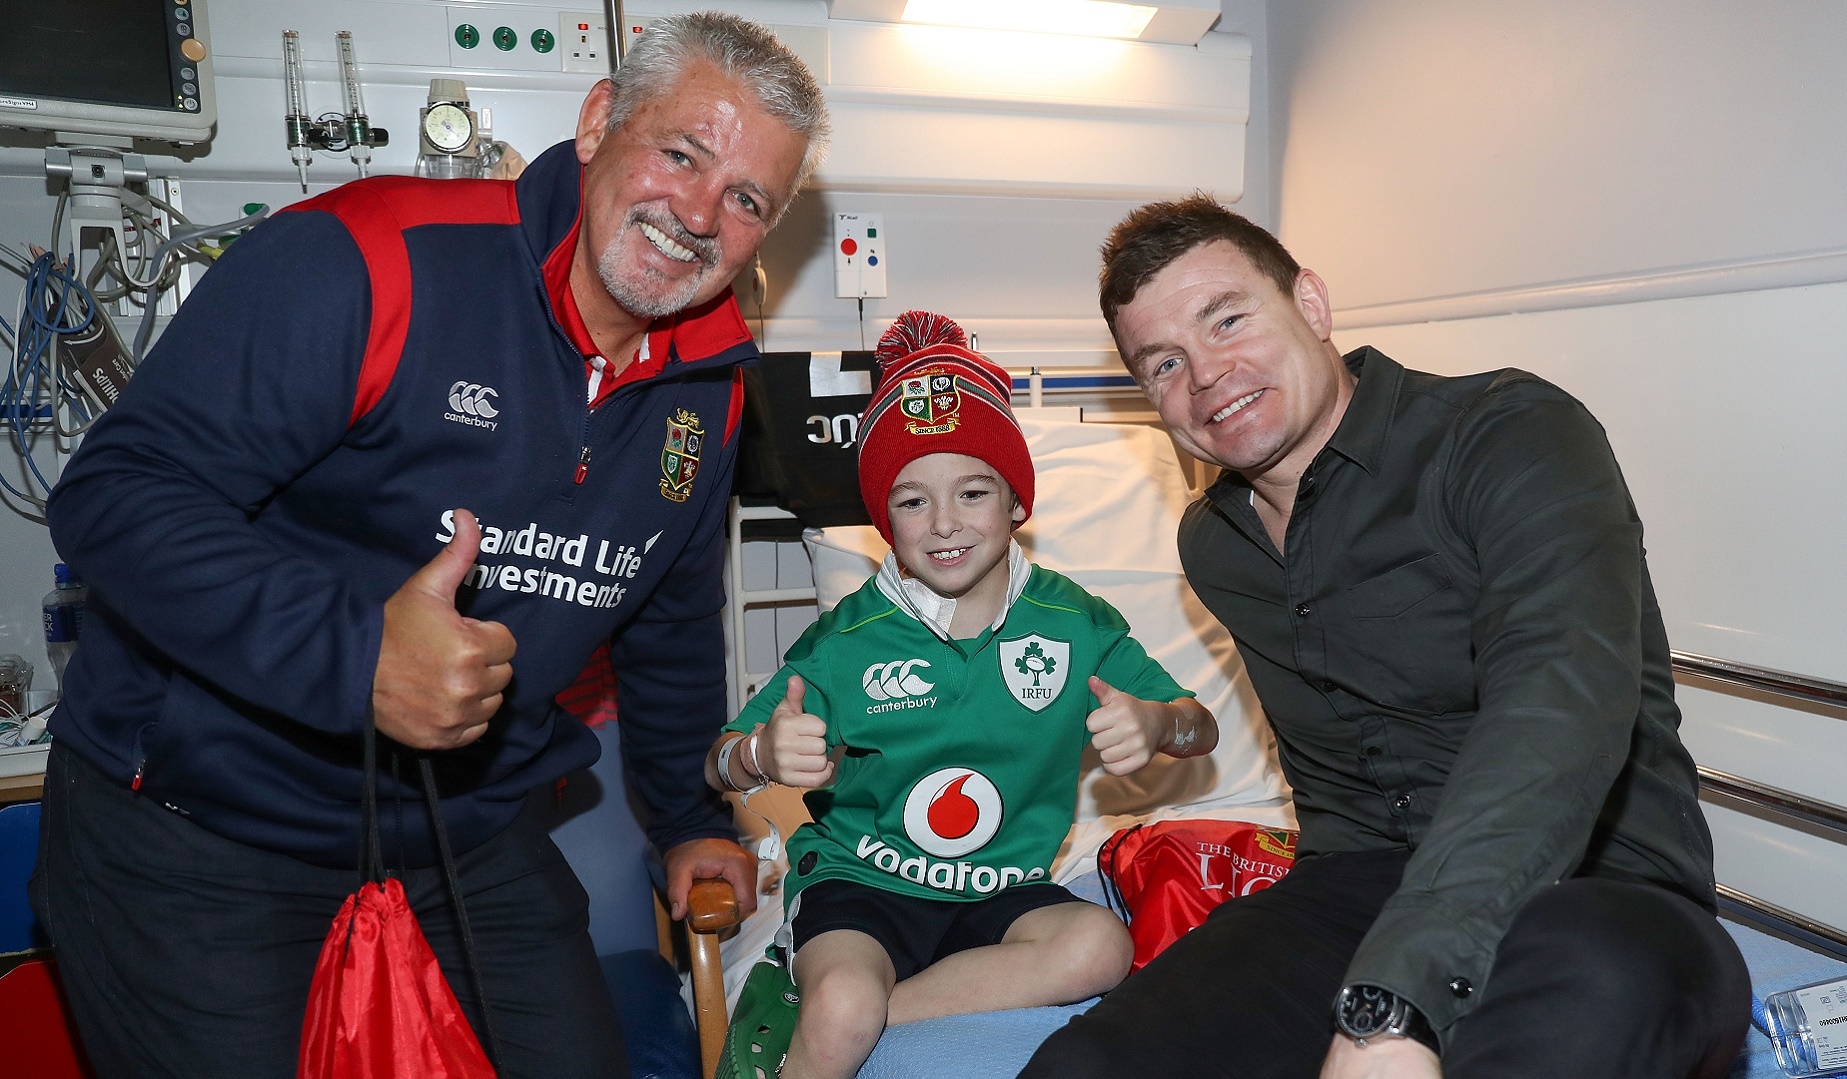 Gatland and O'Driscoll visit patients at Temple Street Children's Hospital